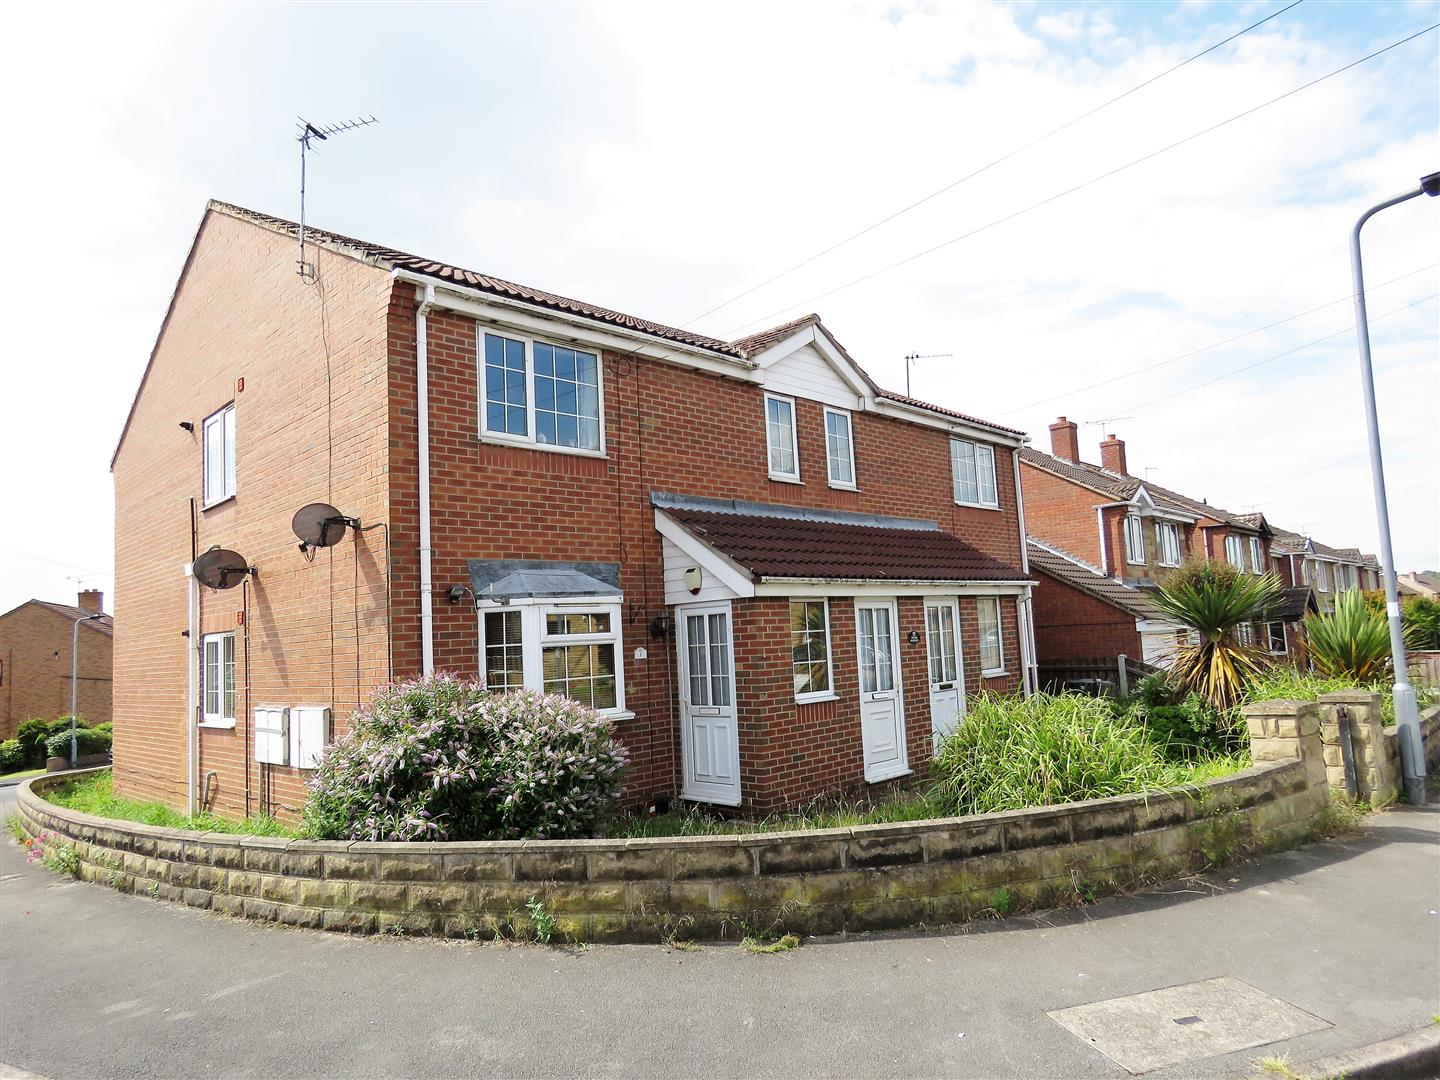 Flat 3 Dove Side Apartments 22 Dove Side Drive Off Snape Hill Darfield BARNSLEY